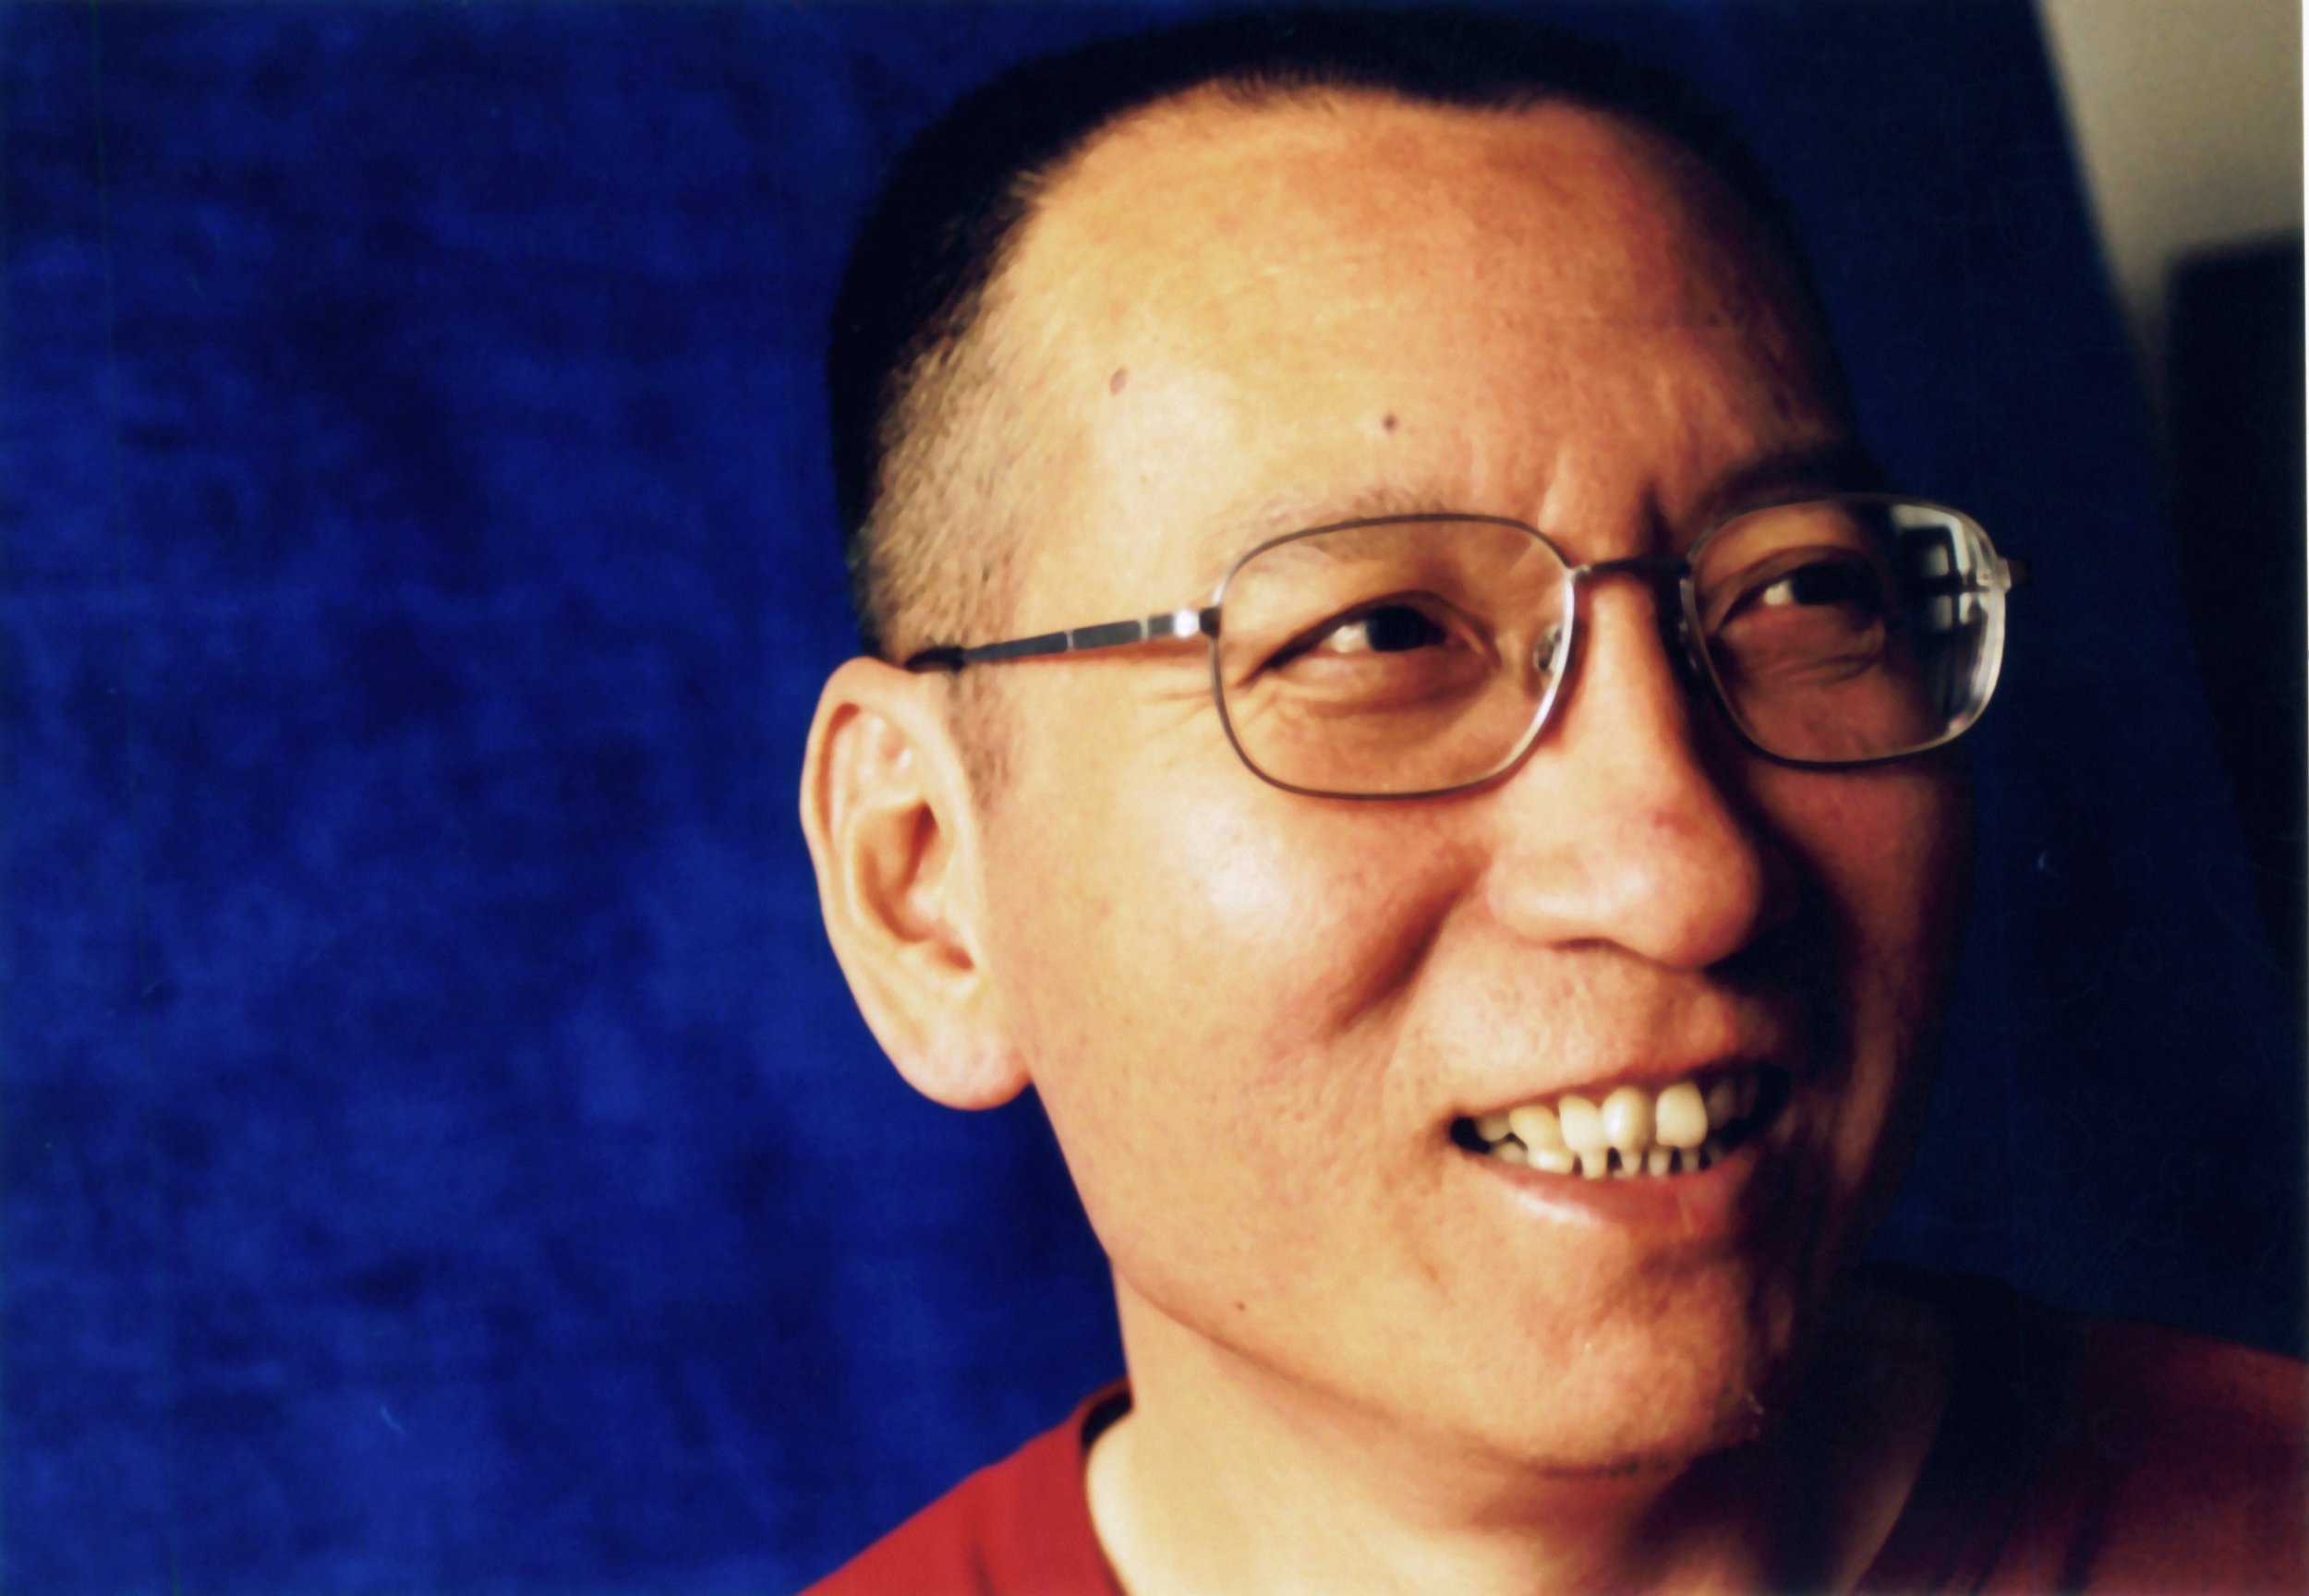 Liu Xiaobo, Chinese dissident and Nobel Peace Prize laureate, dies aged 61